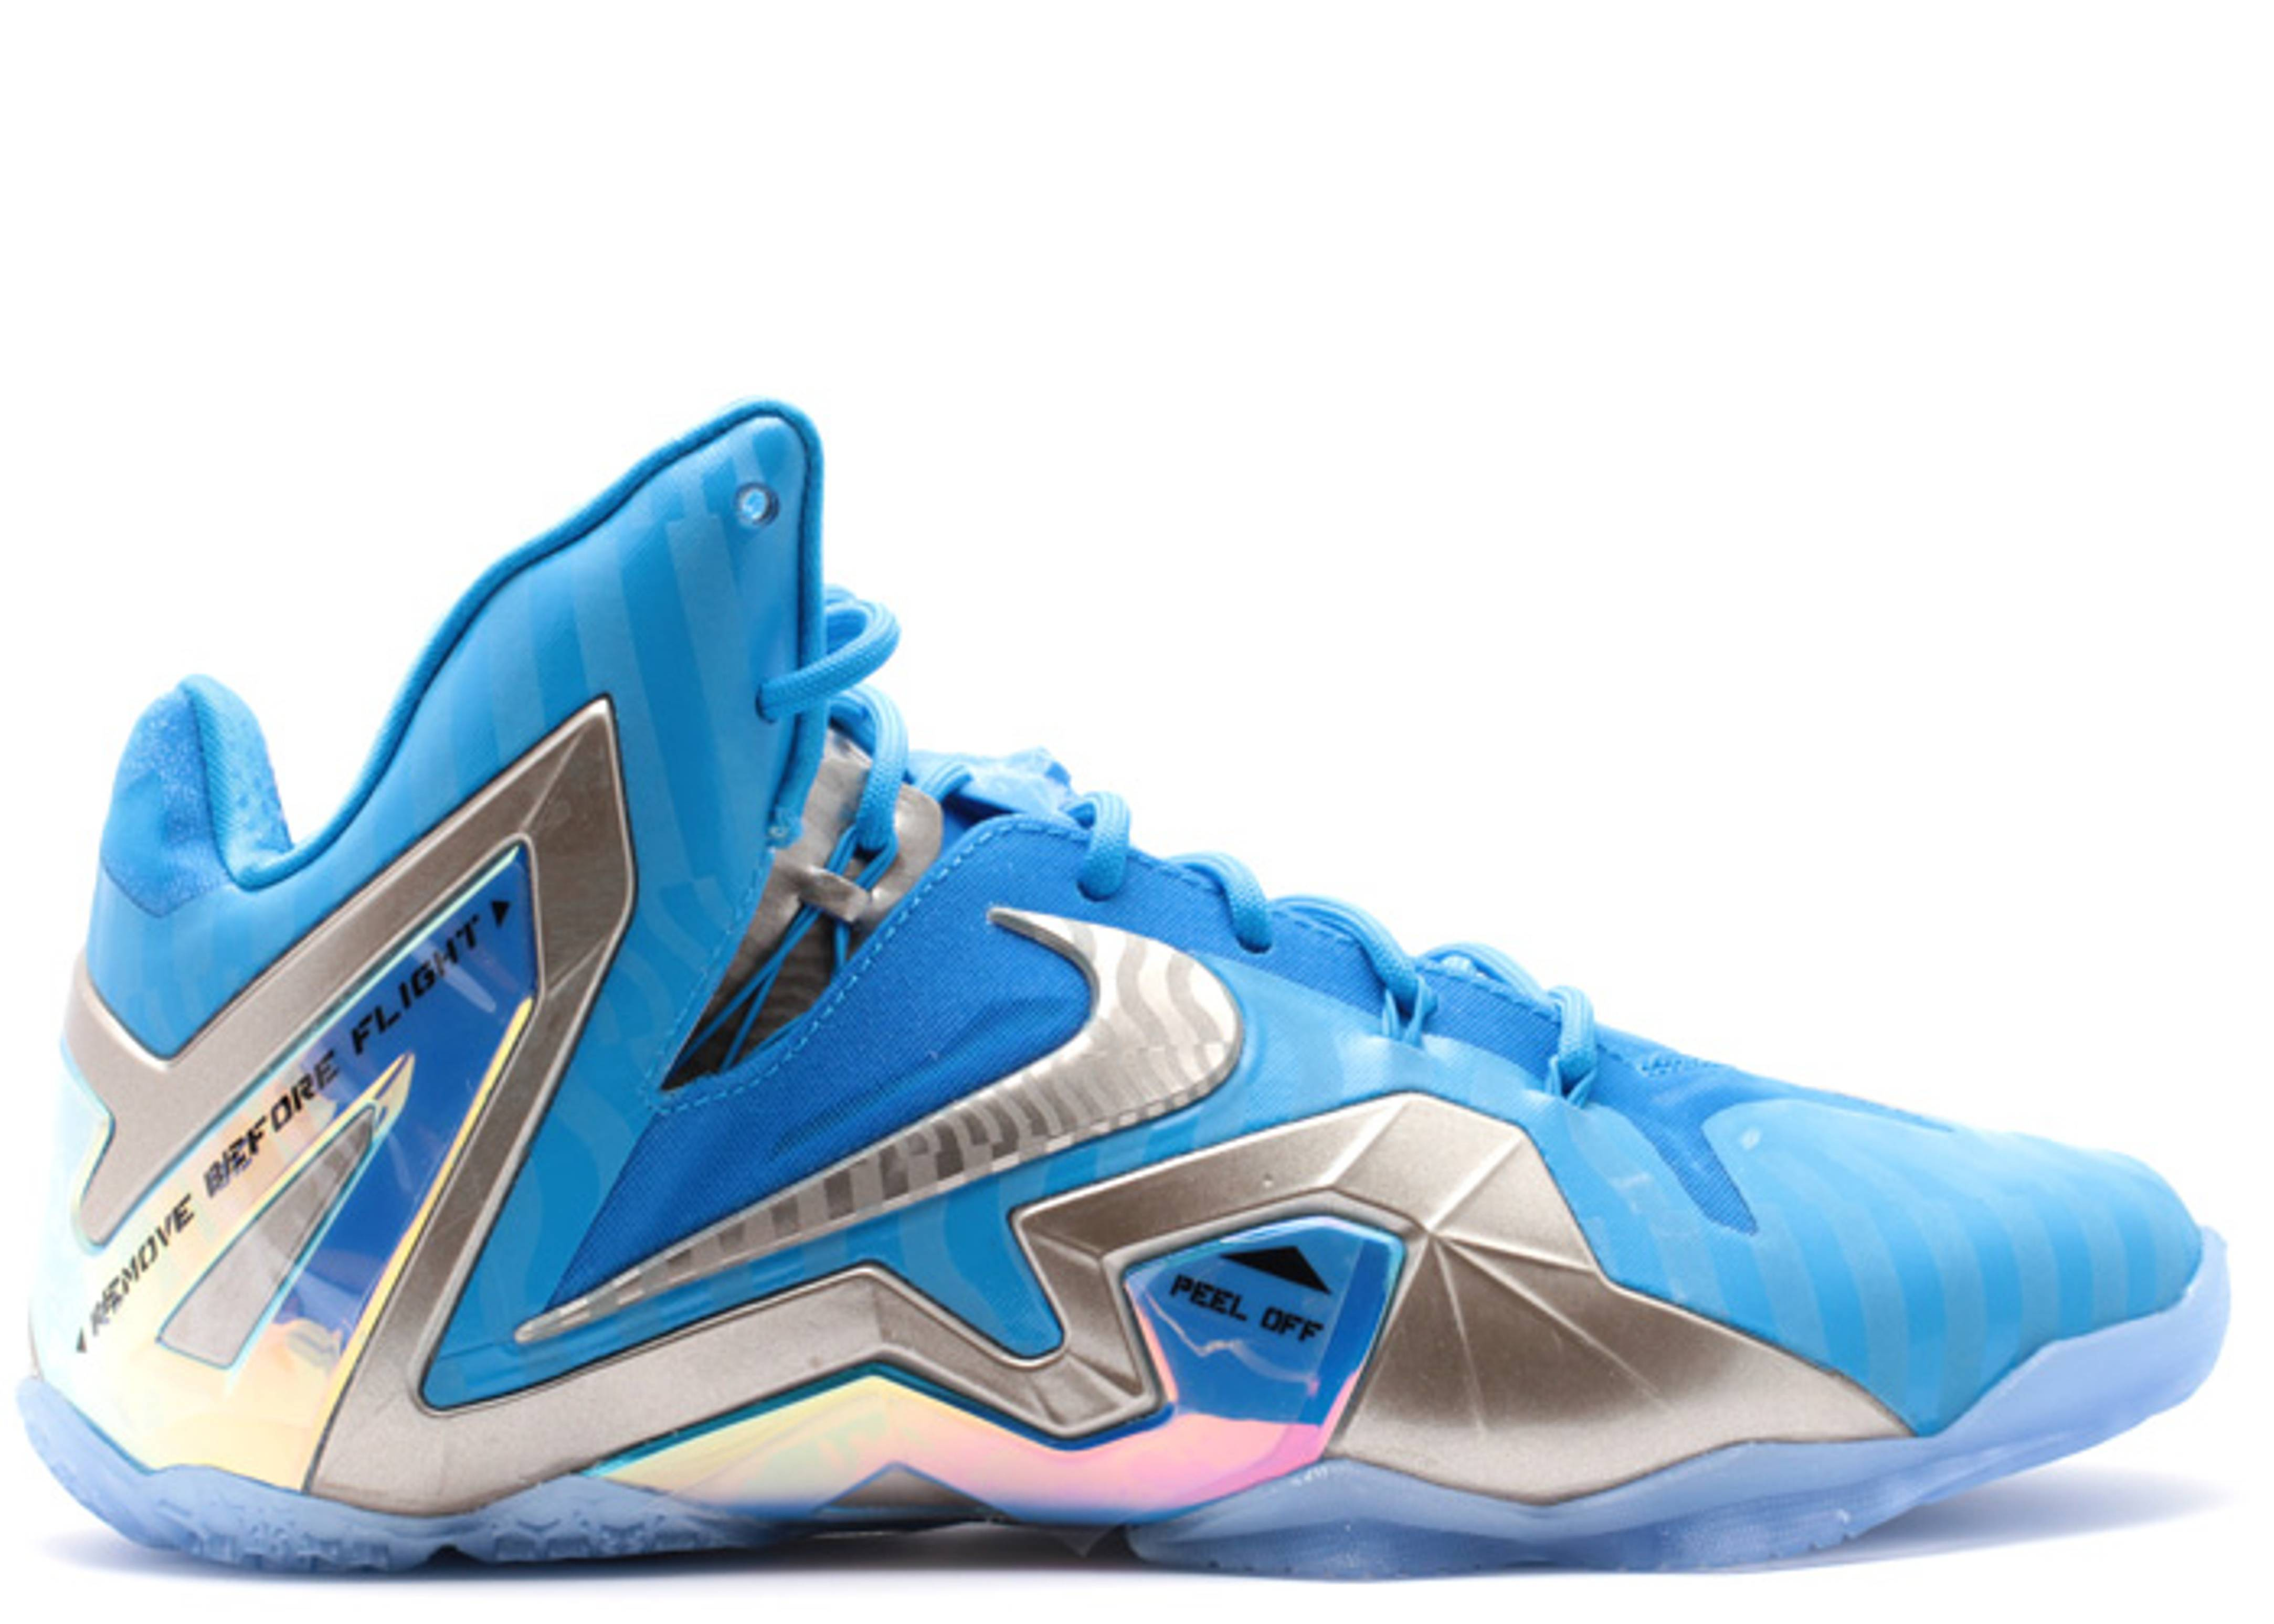 lebron 11 elite collection nike 682892 404 blue